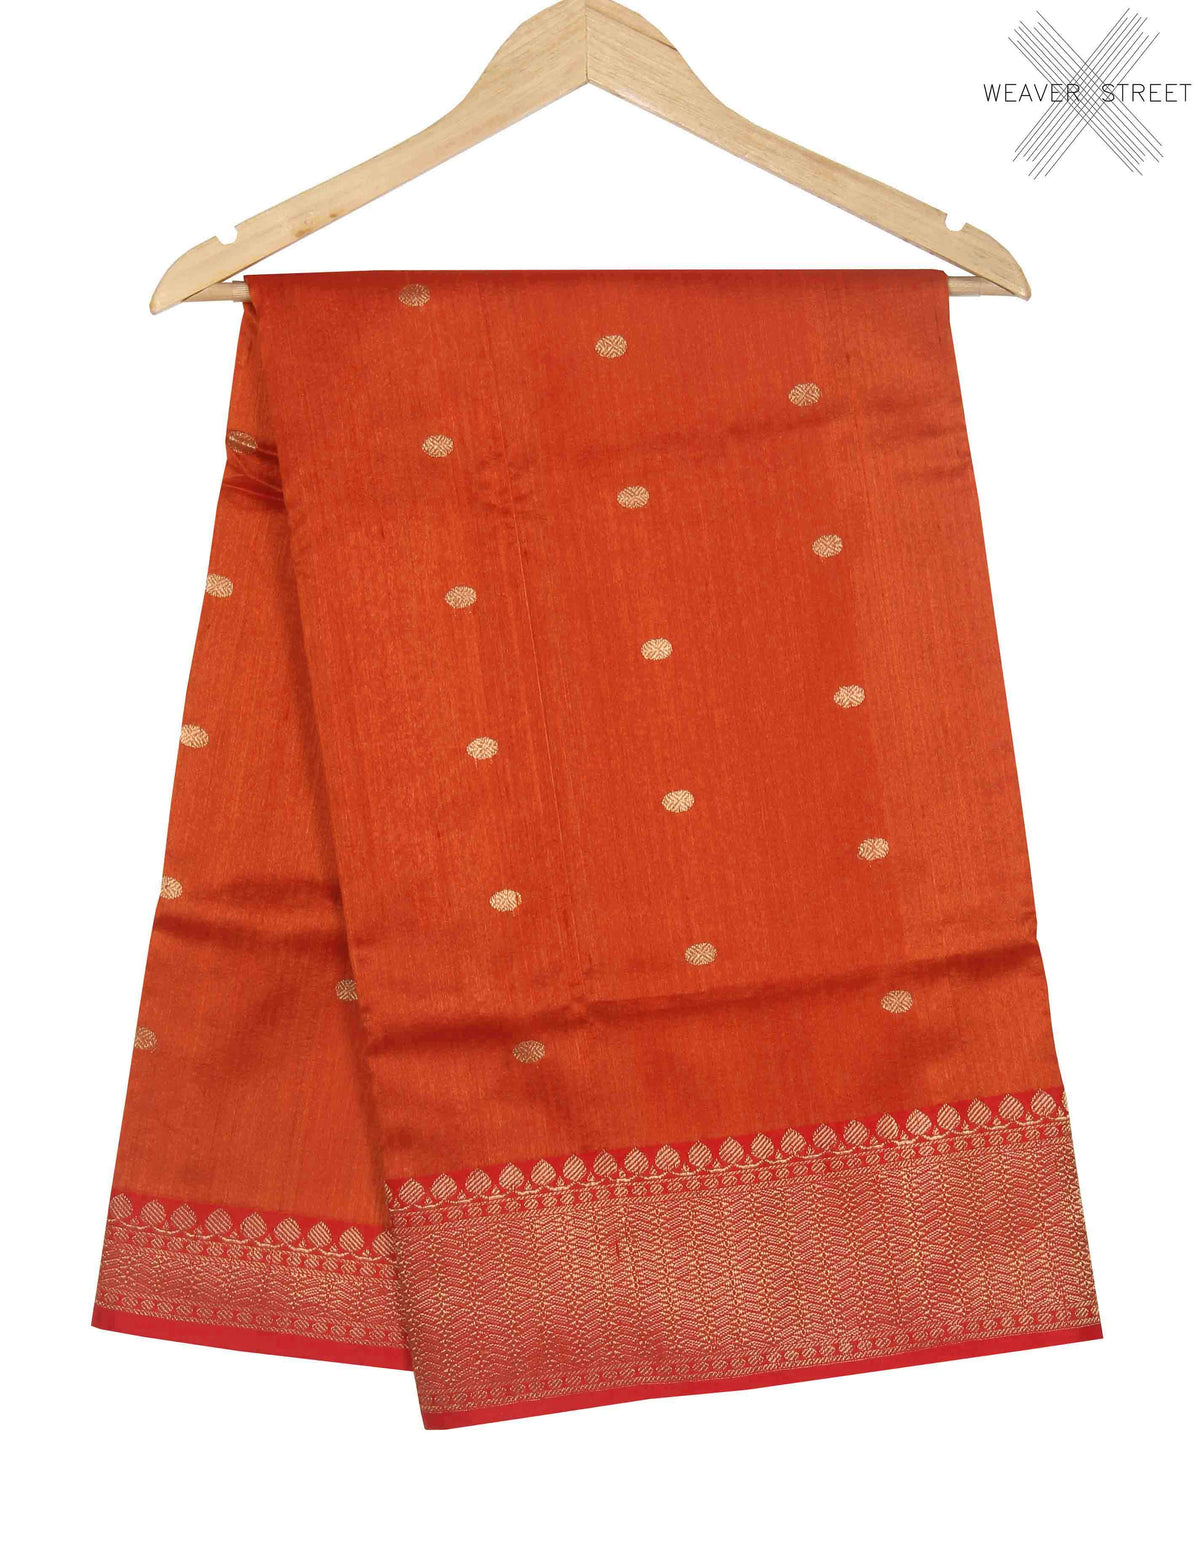 Orange Tussar Silk Handwoven Banarasi saree with polka dot motifs (1) main